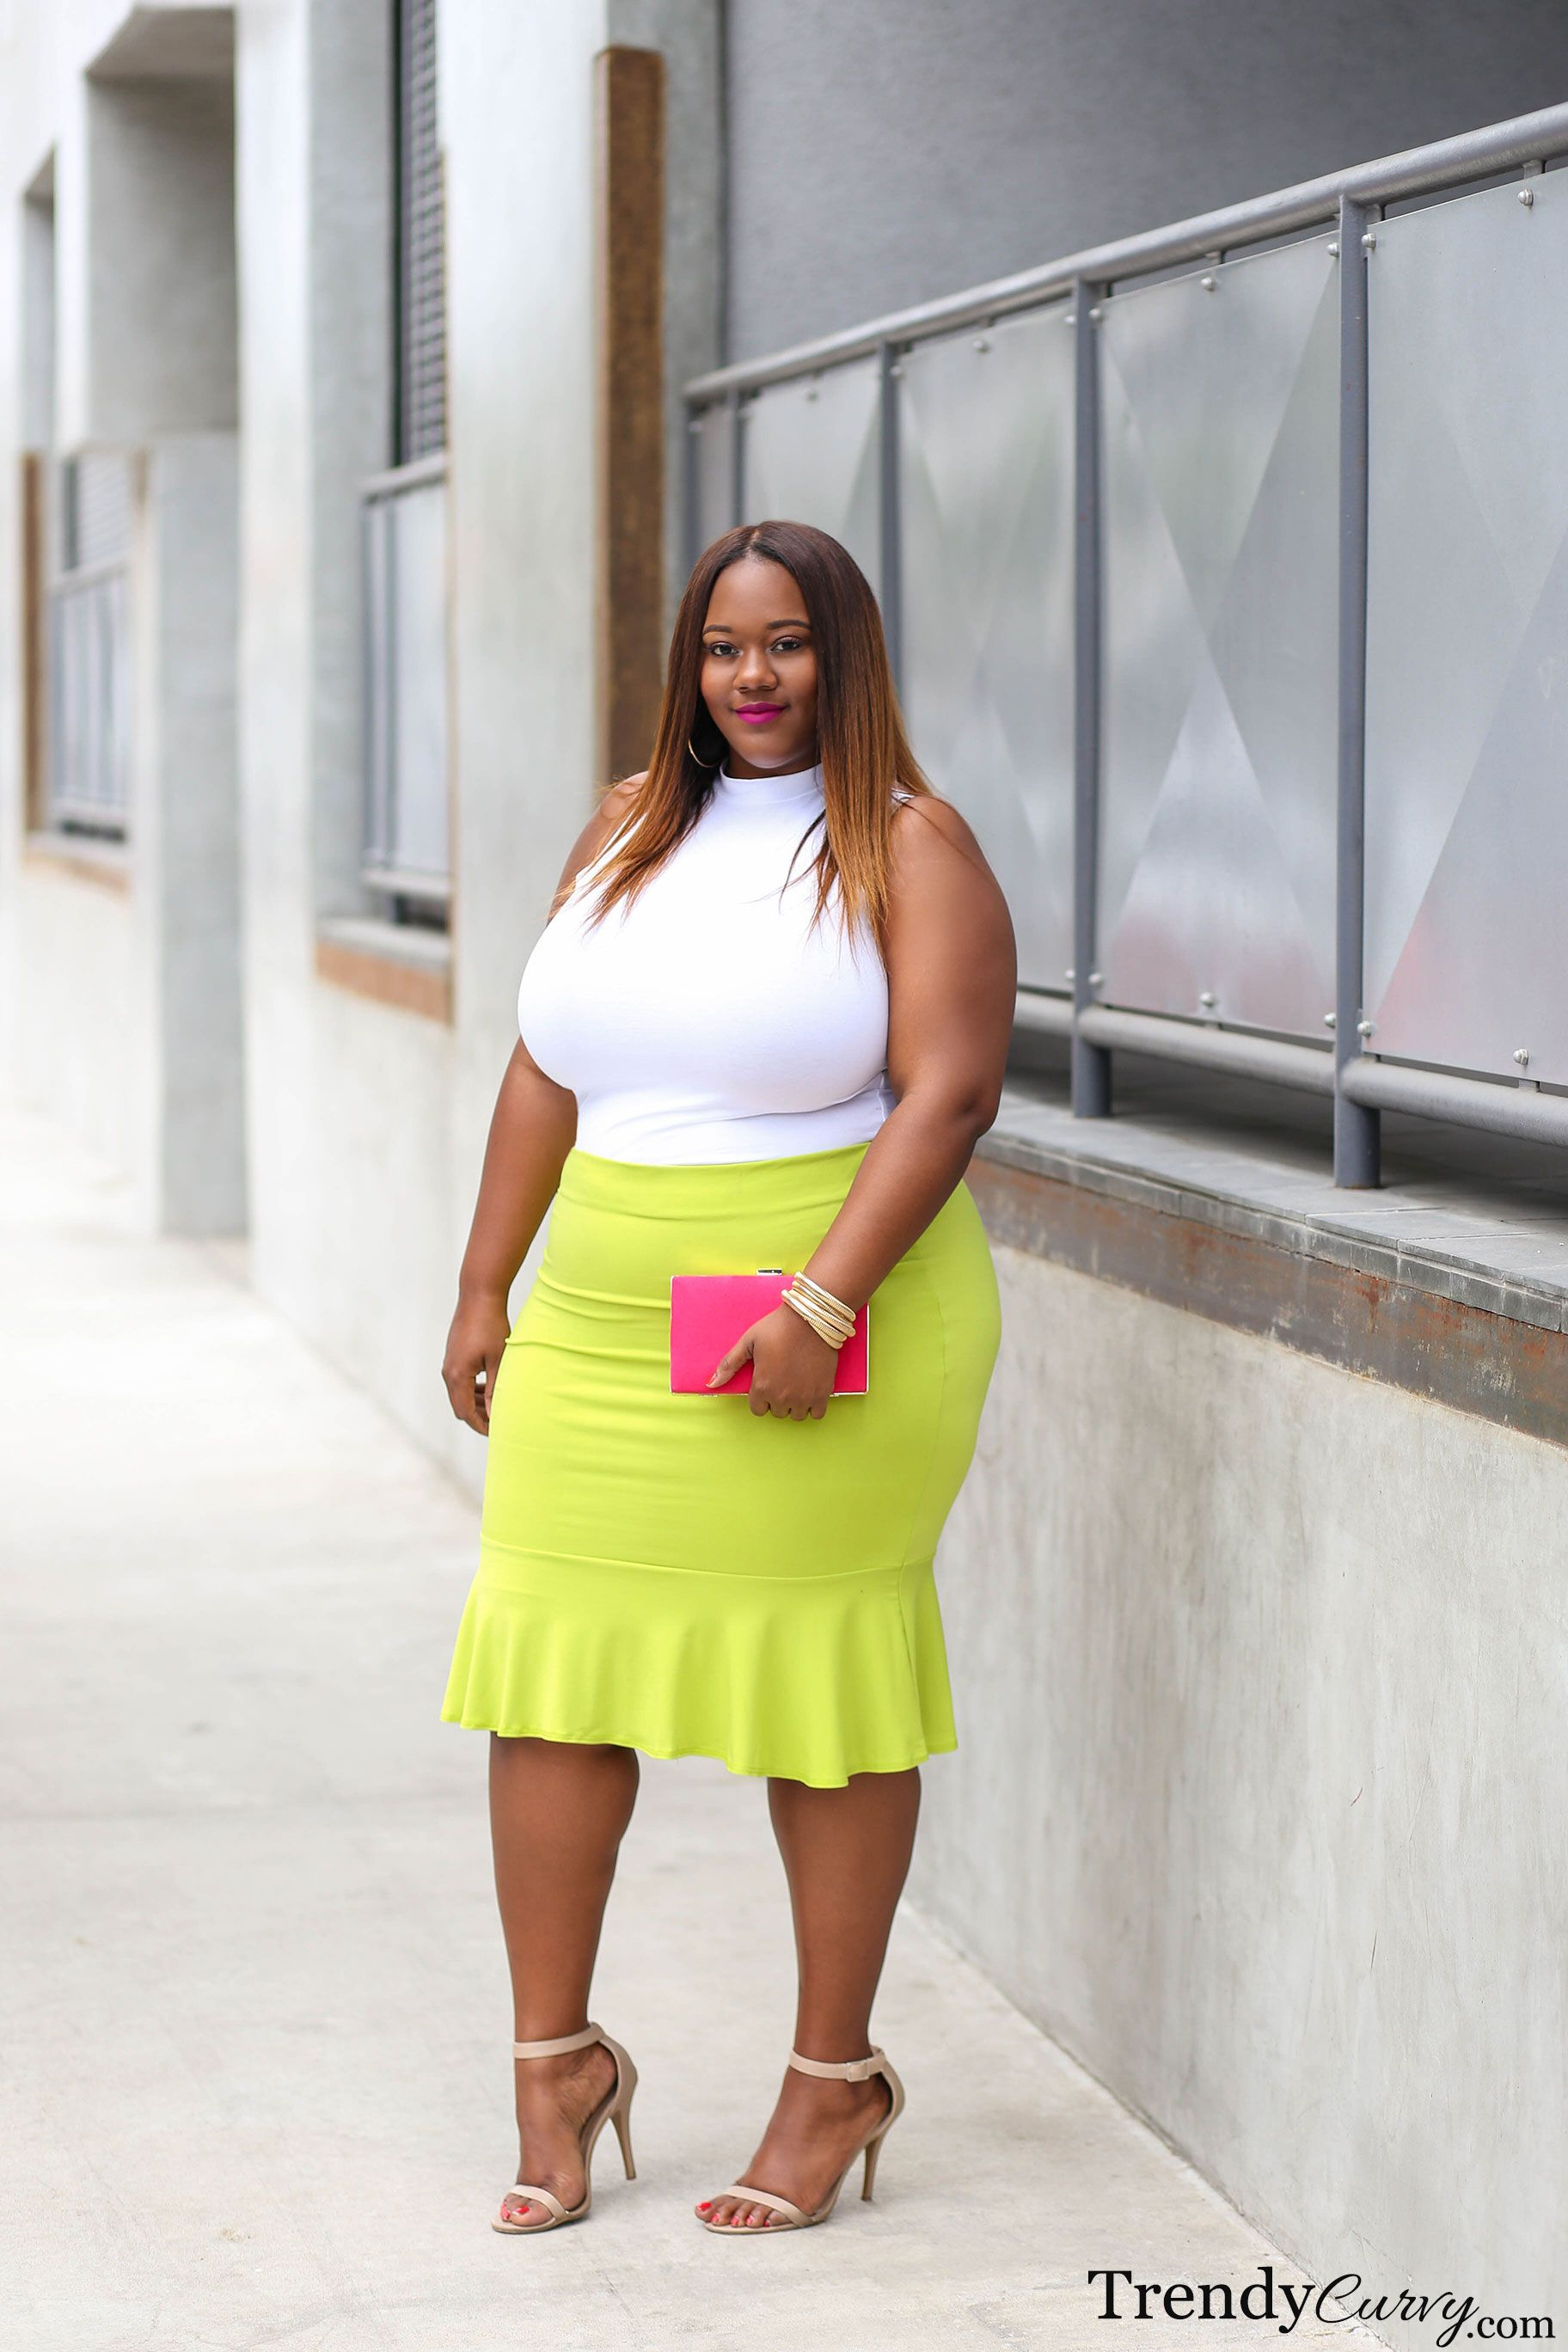 Neon Colored Plus Size Clothing Neon Bright | Curvy Girls | Curvy Women Fashion, Plus Size